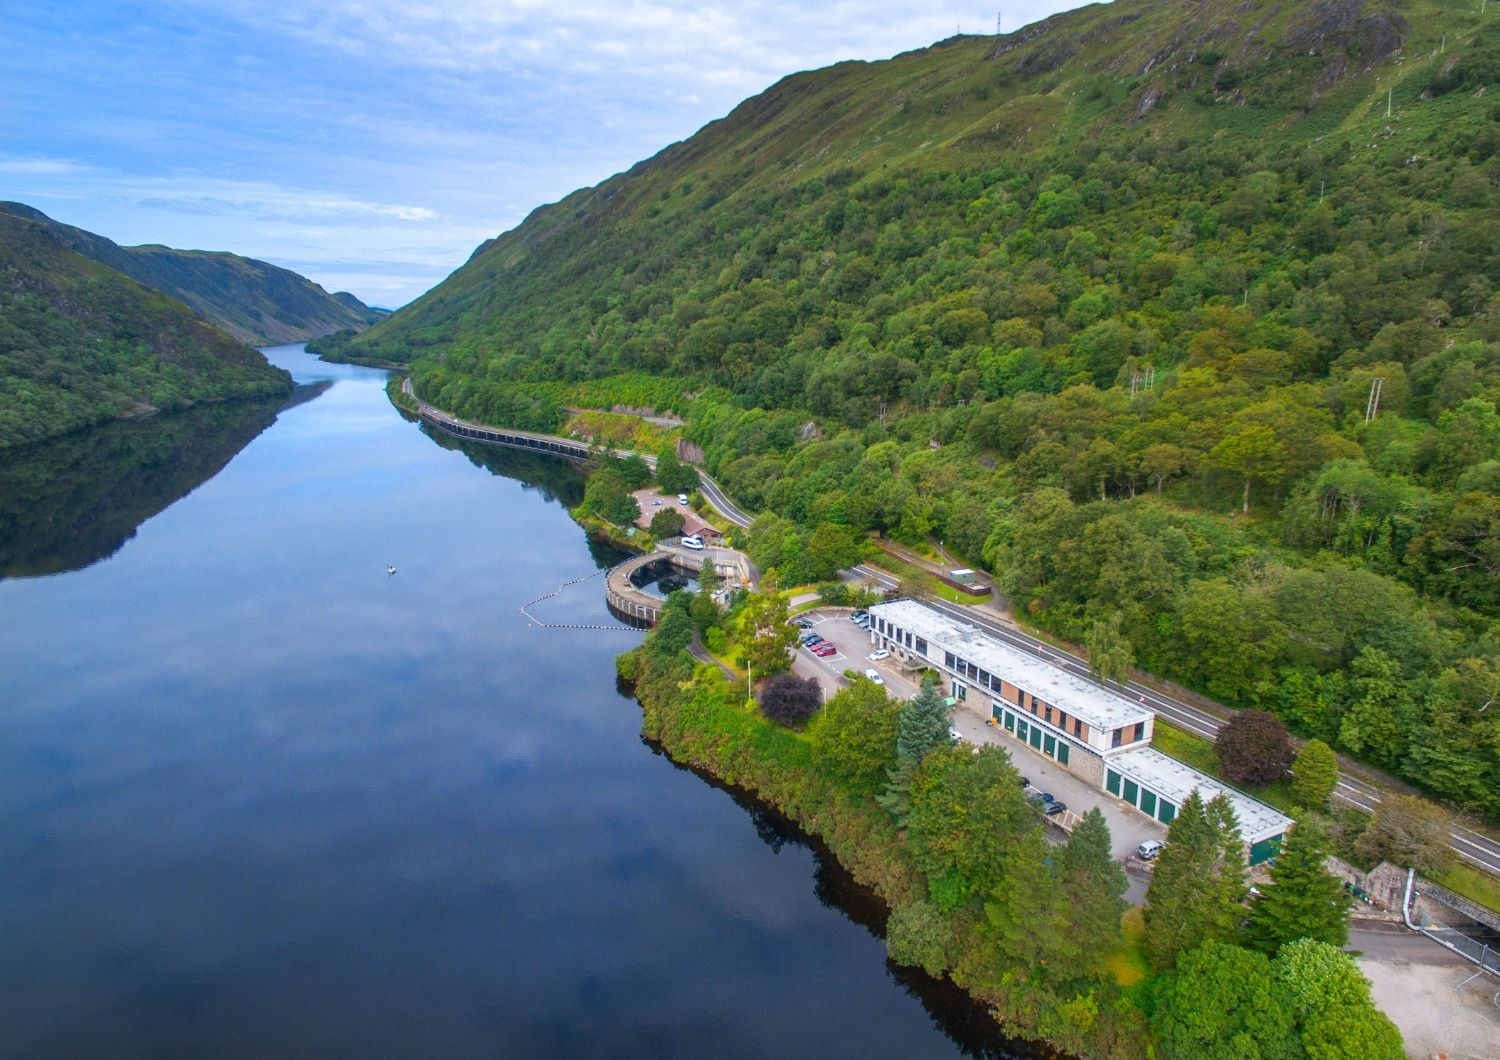 So, from the air, here's a view of  Cruachan - the Hollow Mountain - Visitor Centre . Woods and water? At first sight looks like classic midge country. But wait - they drive you into the mountain, down a tunnel to a great big turbine hall. No midges there - promise. Photo: ScottishPower.